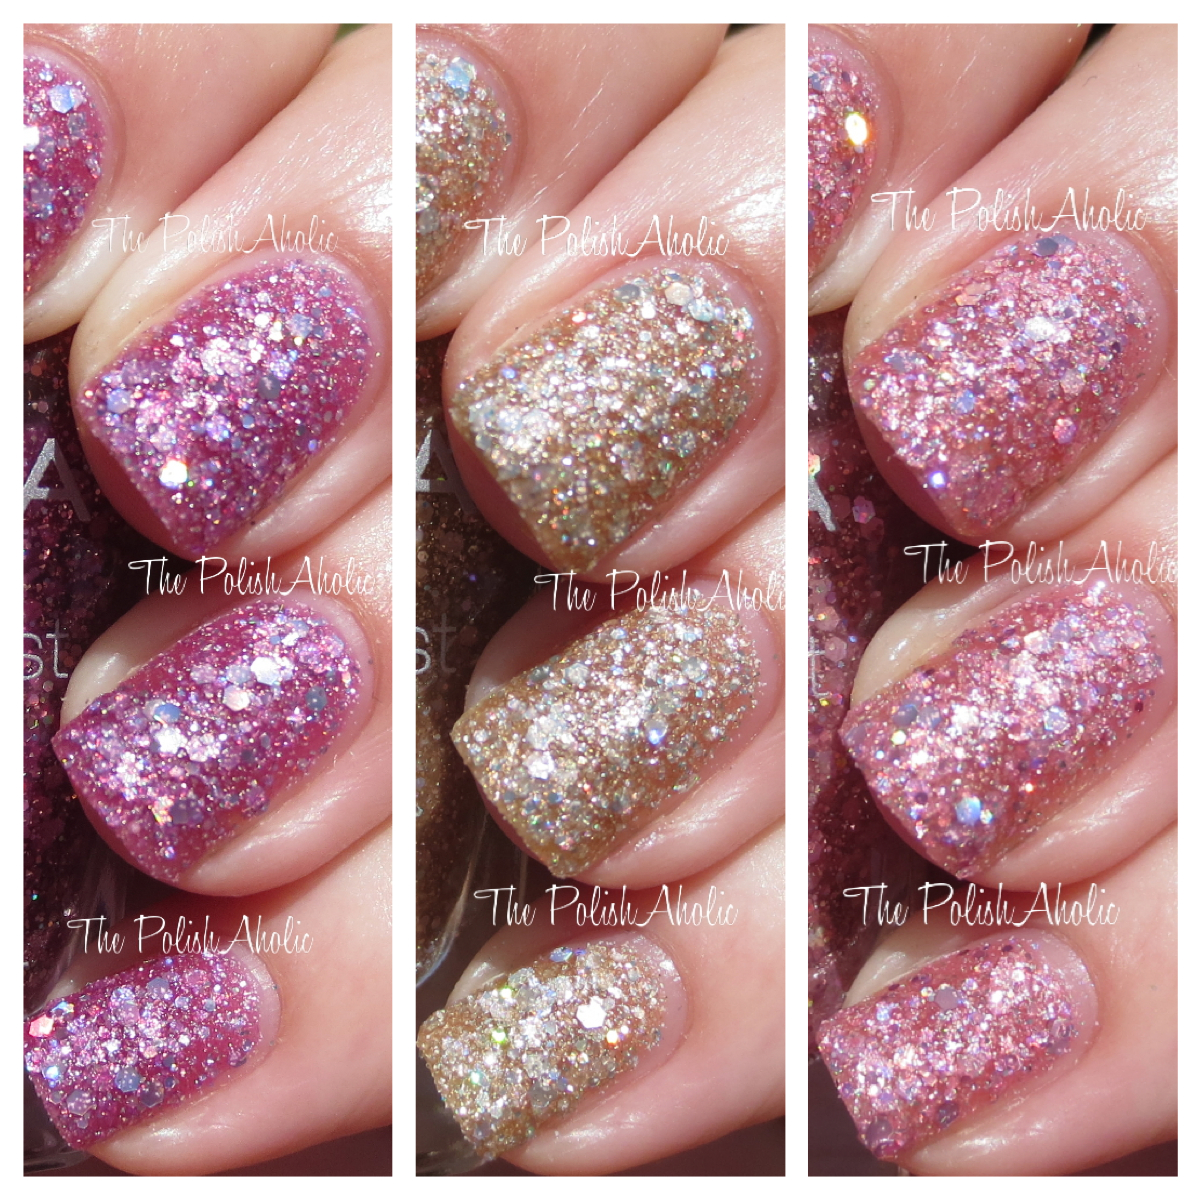 Zoya Summer 2014 Magical Pixie Collection Swatches Review